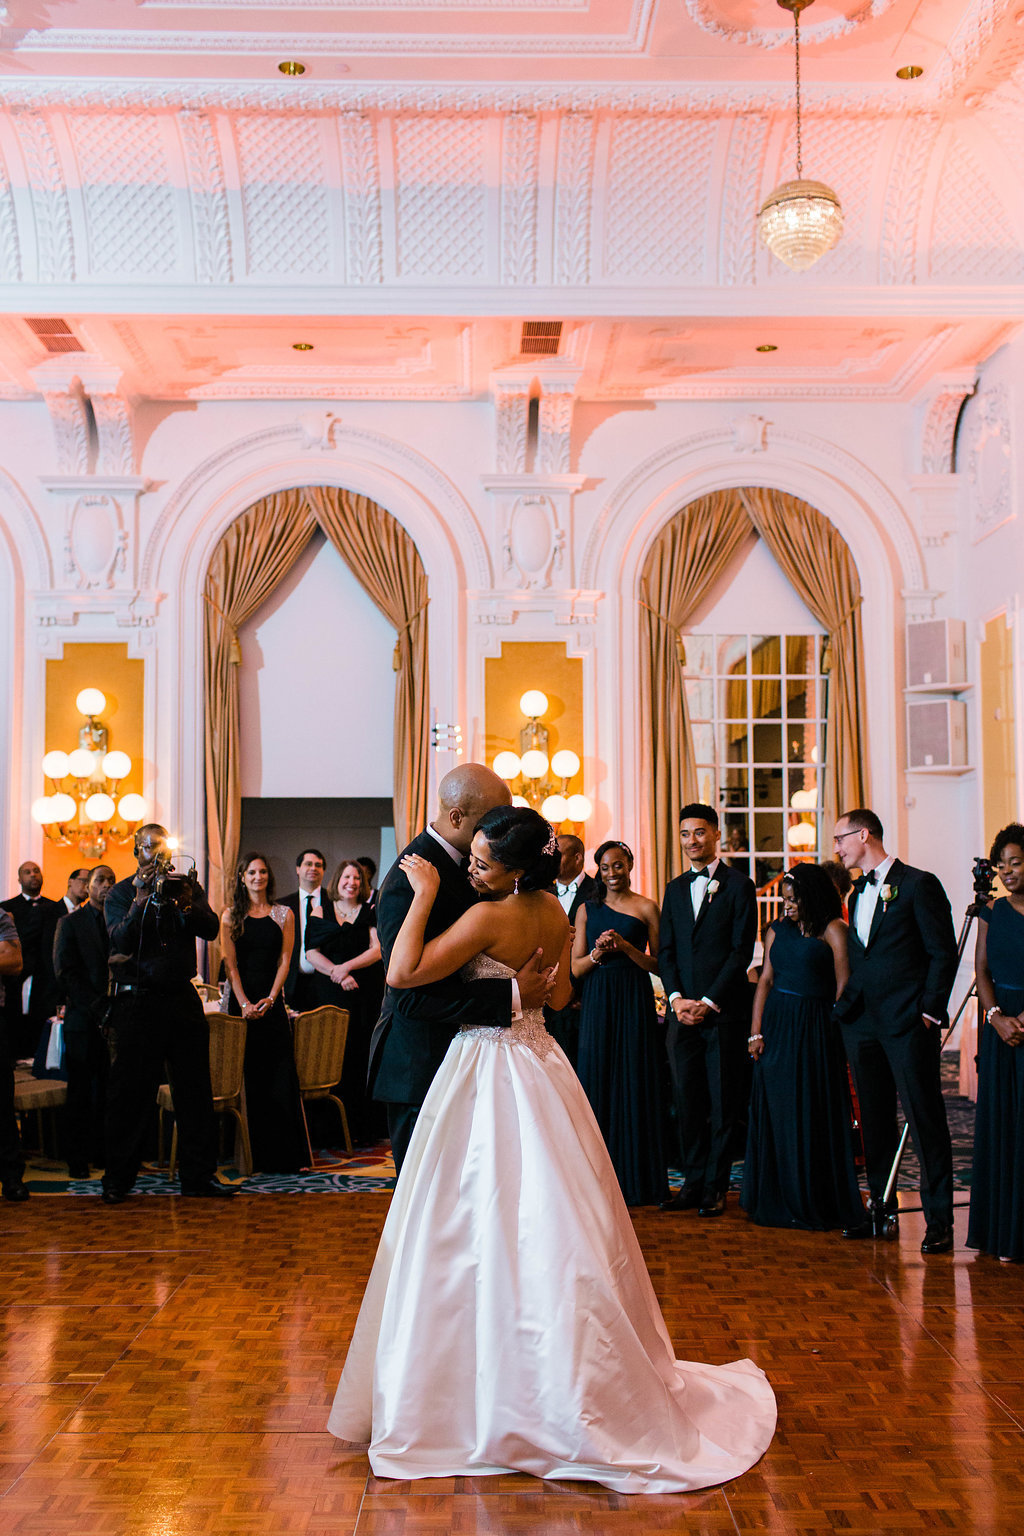 Ballroom wedding photographer